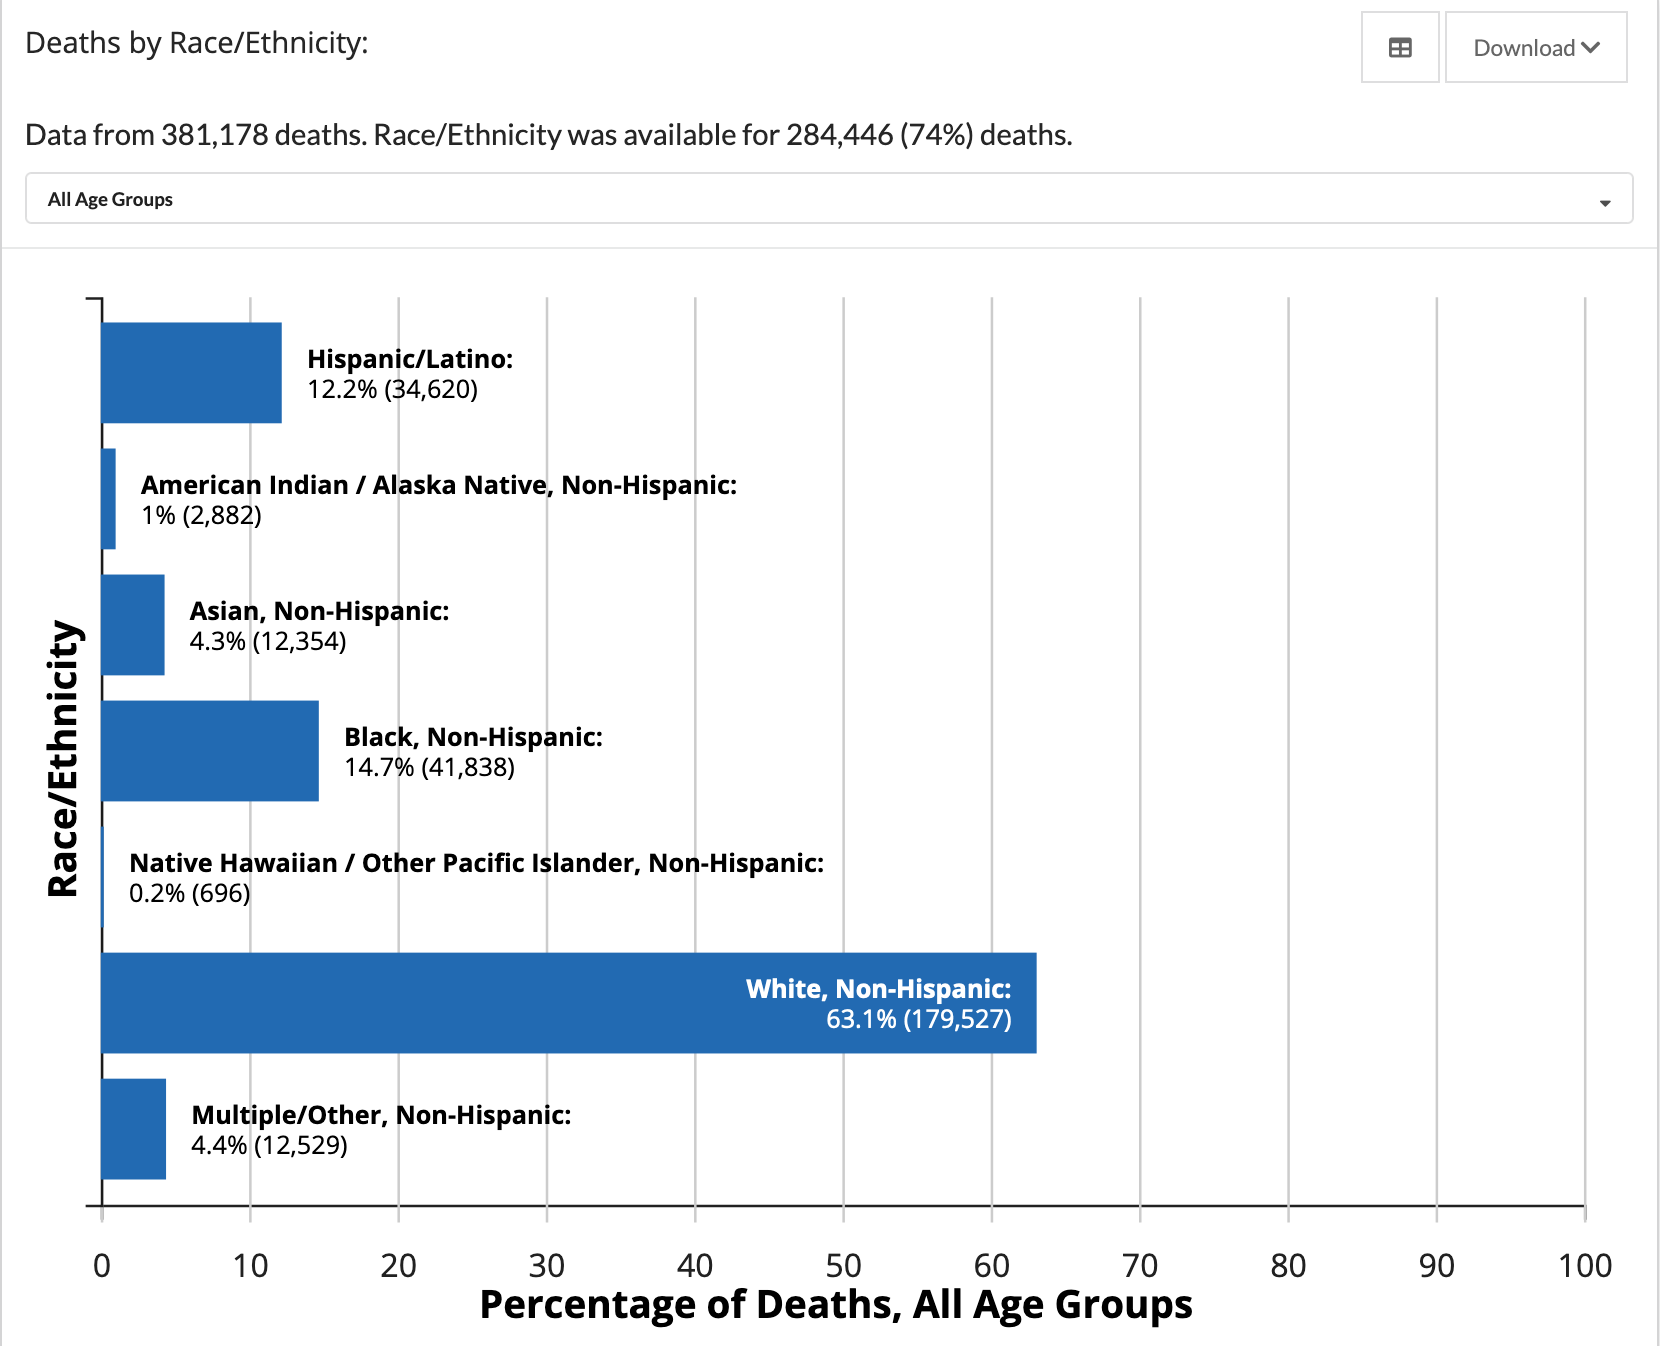 Bar graph showing the percentage of COVID-19 deaths by race/ethnicity for 74% of known deaths. White, non-Hispanic people are 63.1% of deaths, Hispanic/Latino people are 12.2% of deaths, Black, non-Hispanic people are 14.7% of deaths, Asian, non-Hispanic people are 4.3% of deaths, American Indian / Alaska Native people are 1% of deaths, Native Hawaiian people are are .2% of deaths, and multiple/other non-Hispanic people are 4.4% of deaths.